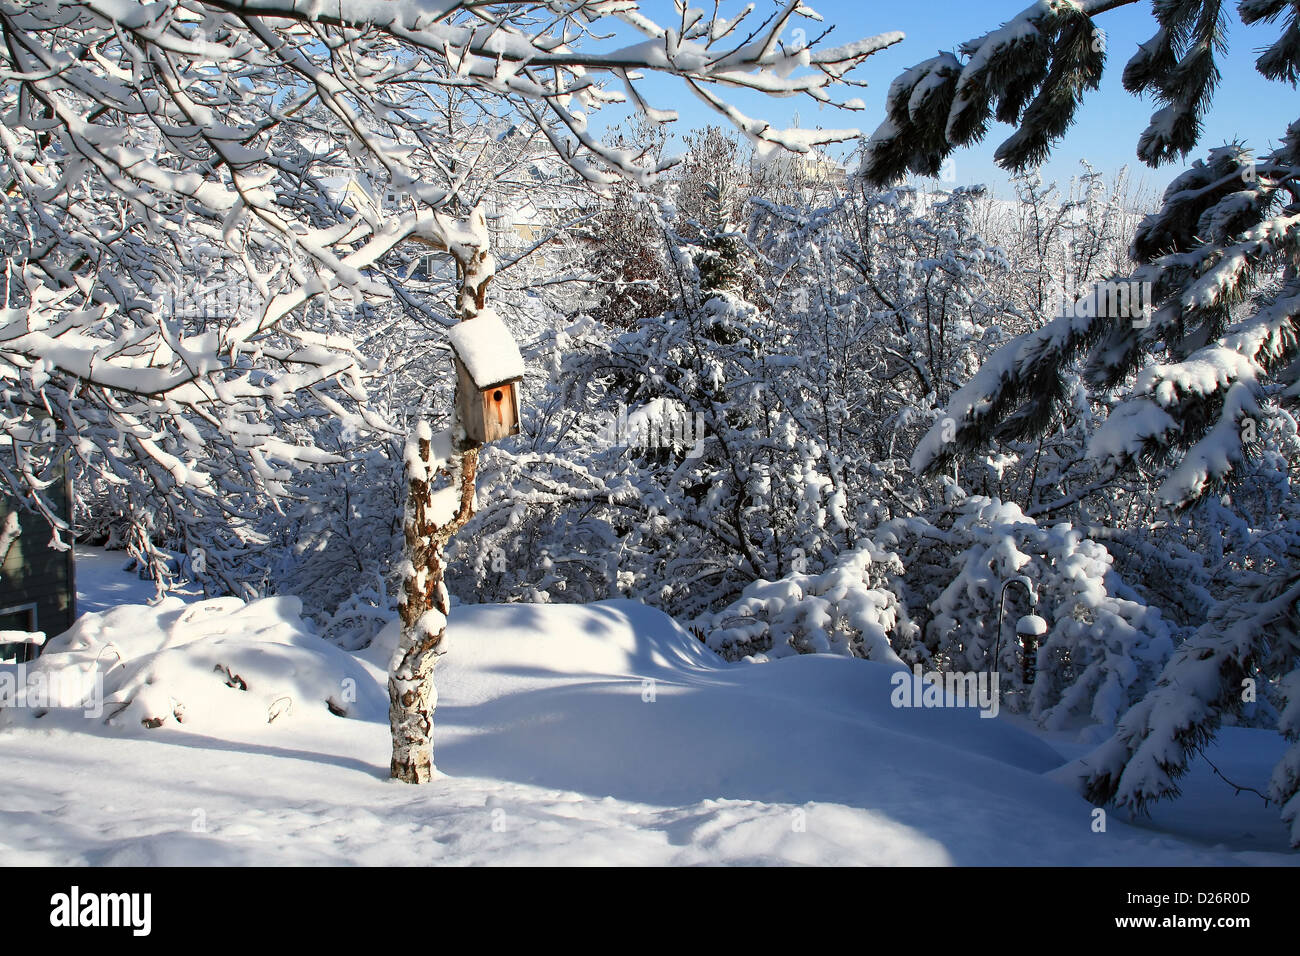 birdhouse winter stockfotos birdhouse winter bilder alamy. Black Bedroom Furniture Sets. Home Design Ideas